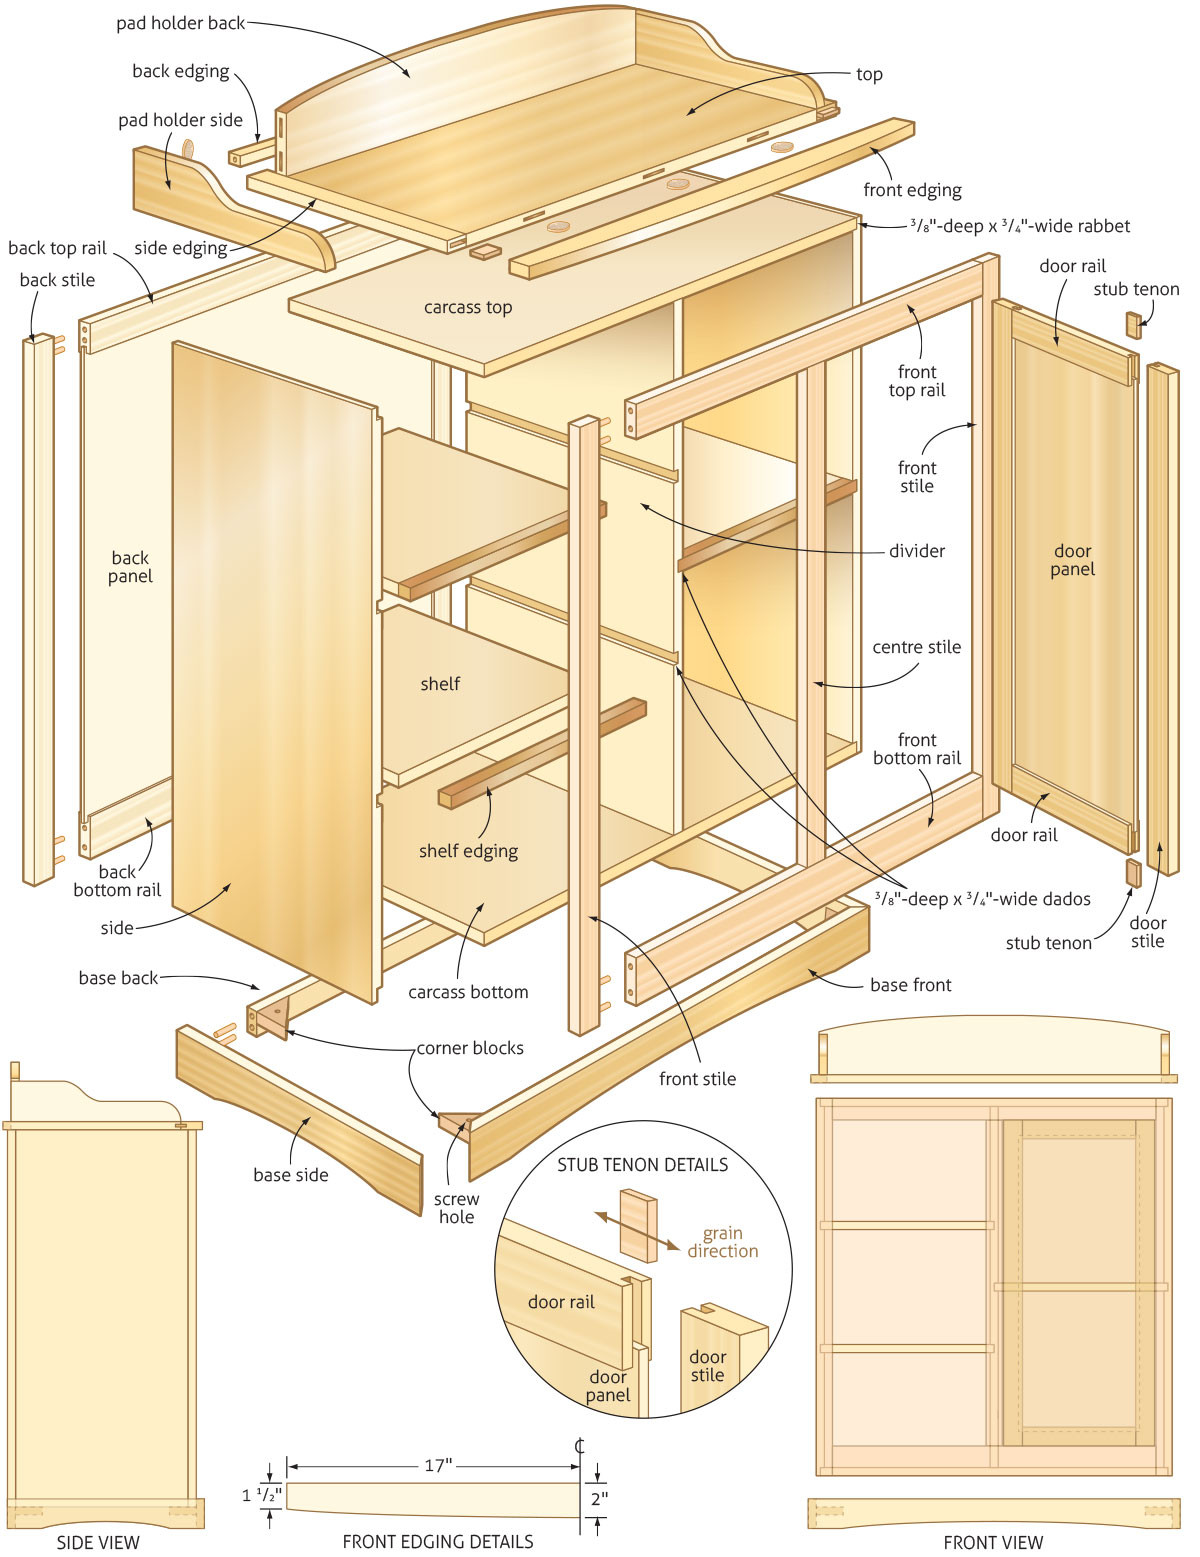 Best ideas about DIY Woodworking Plans . Save or Pin baby changing table woodworking plans WoodShop Plans Now.